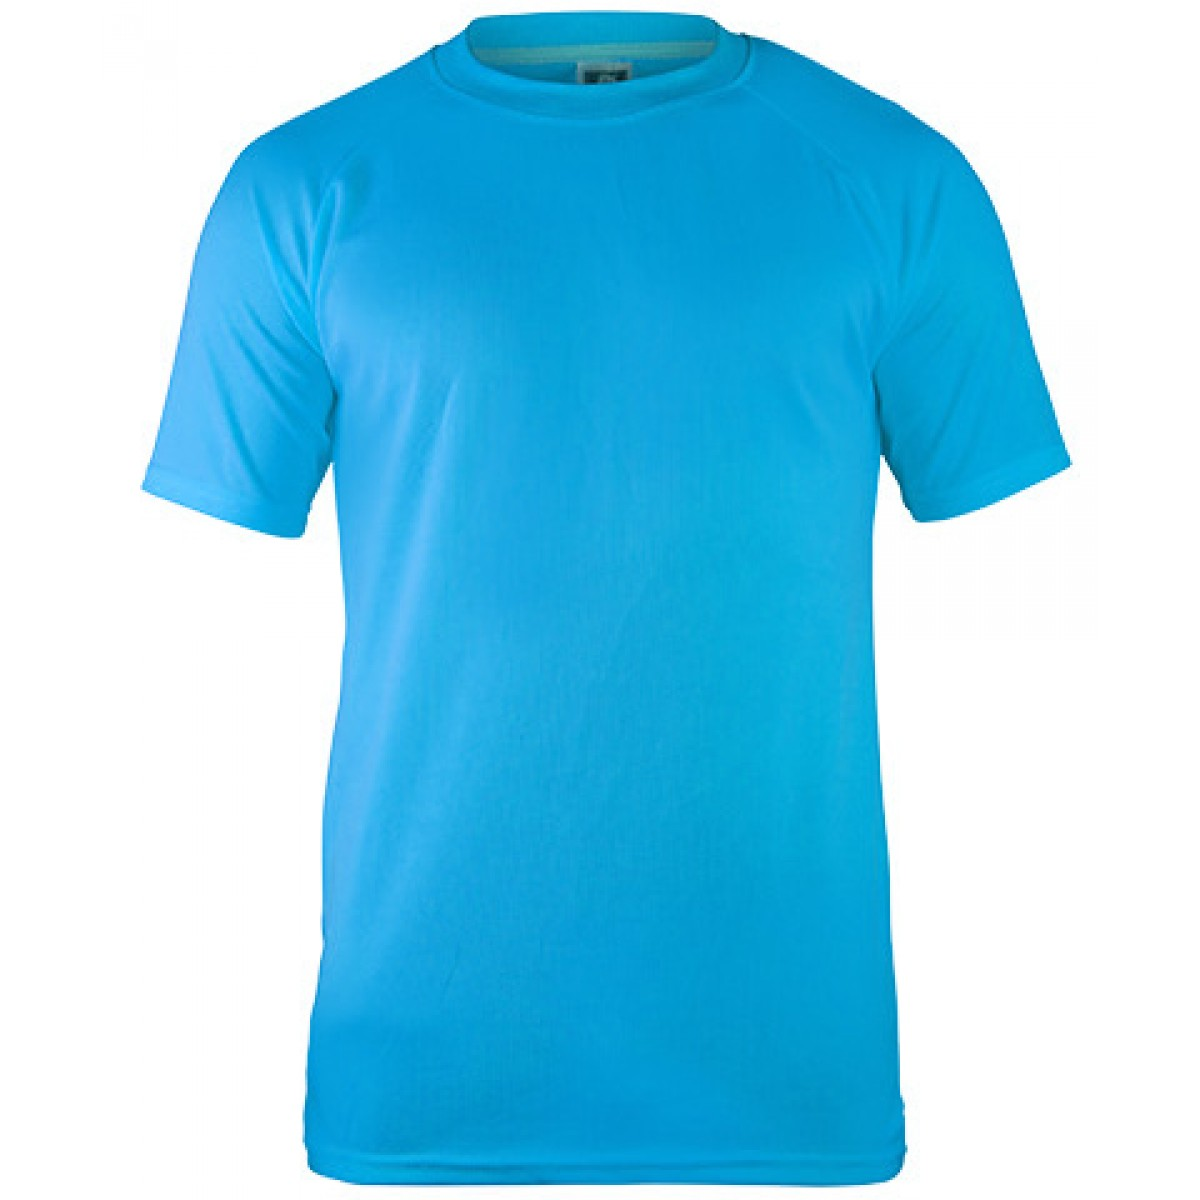 Short Sleeves Mesh Performance T-shirt-Blue-YM